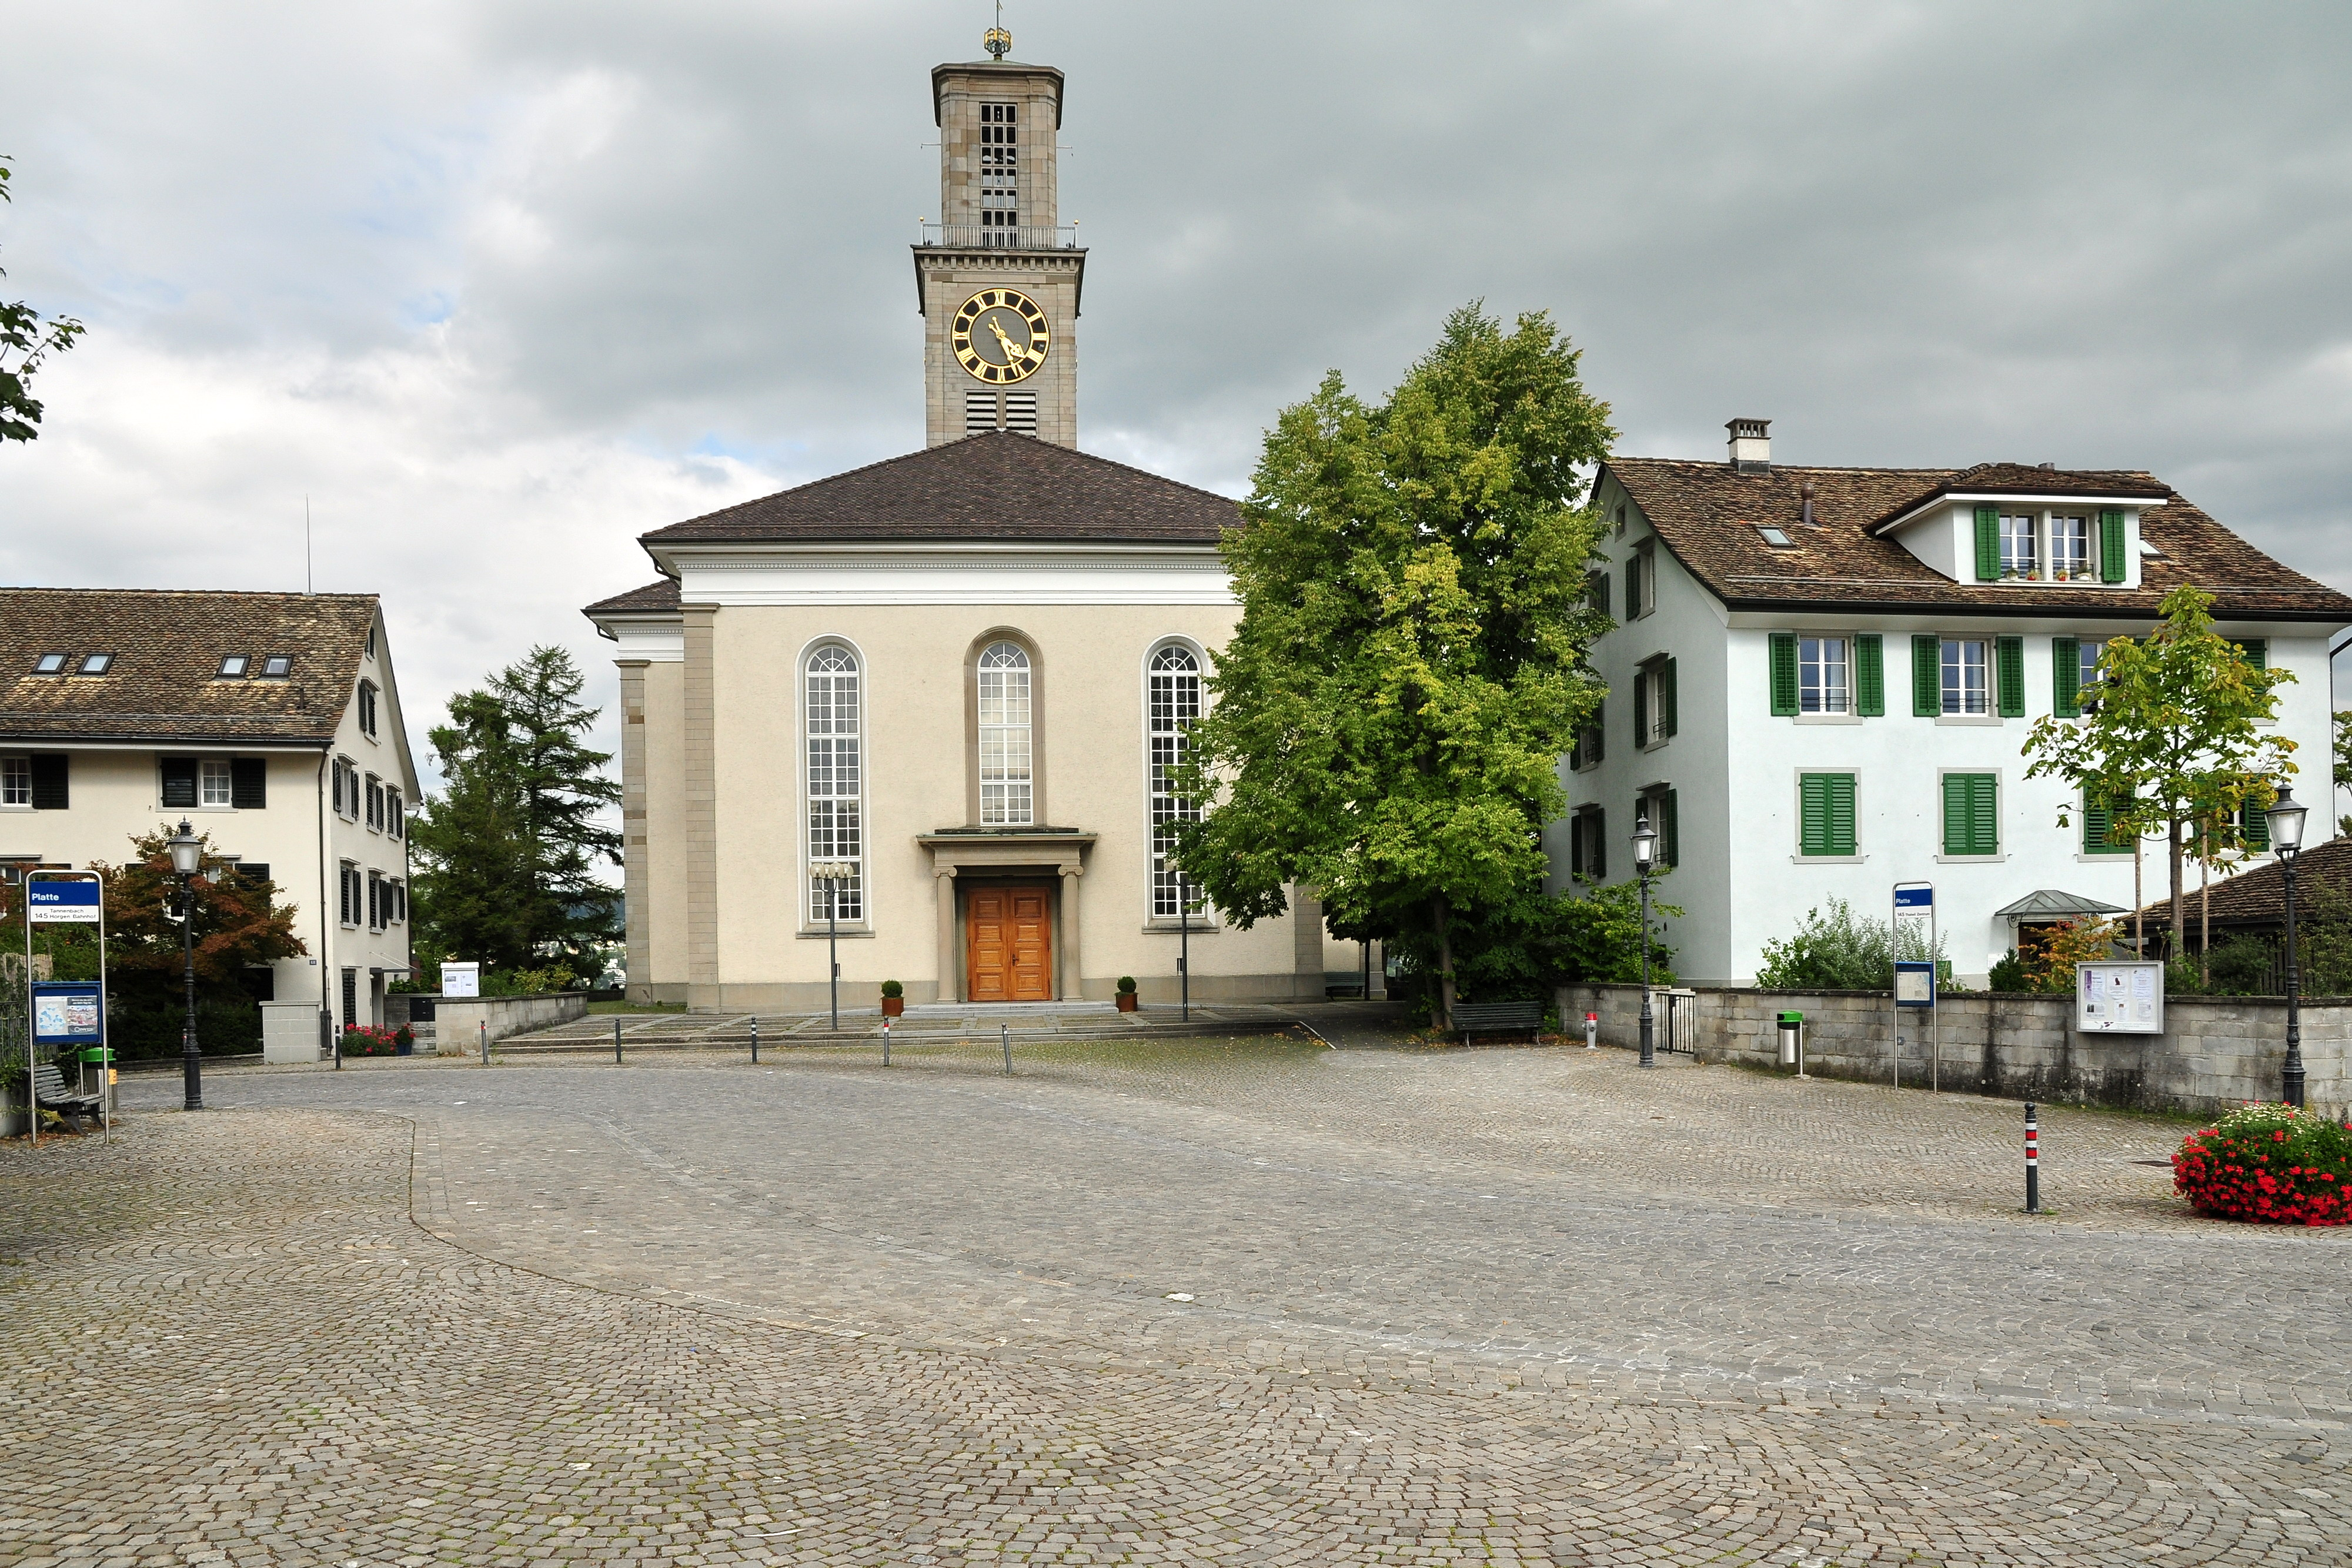 Thalwil Switzerland  city pictures gallery : Description Thalwil Reformierte Kirche Alte Landstrasse 2011 08 29 ...